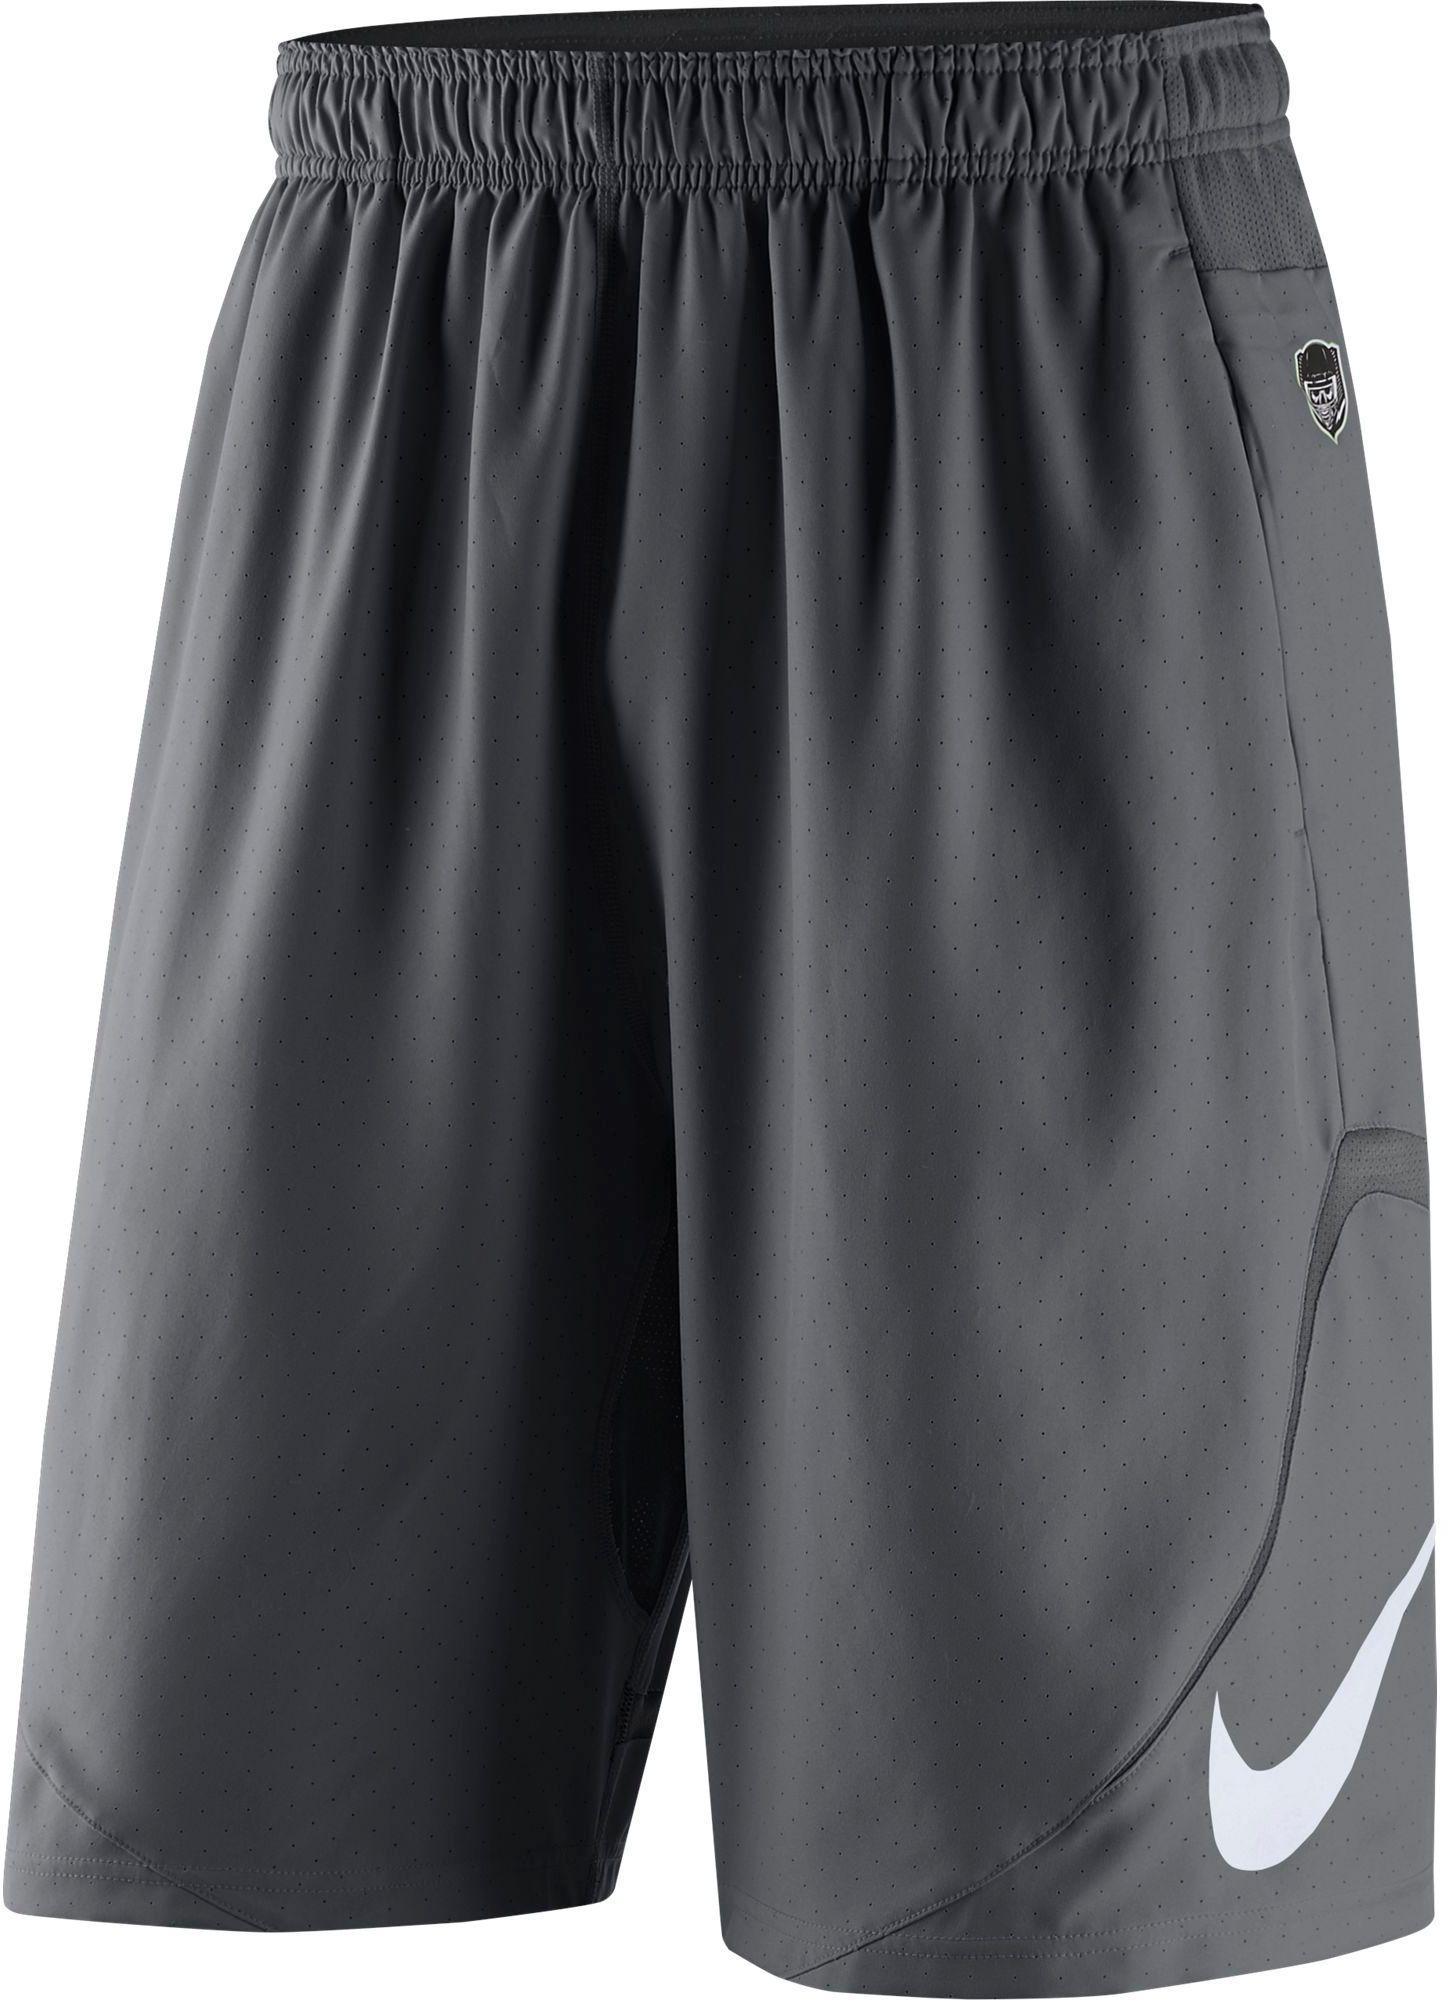 fa13ef1b9f99 Lyst - Nike Untouchable Woven Football Shorts in Gray for Men